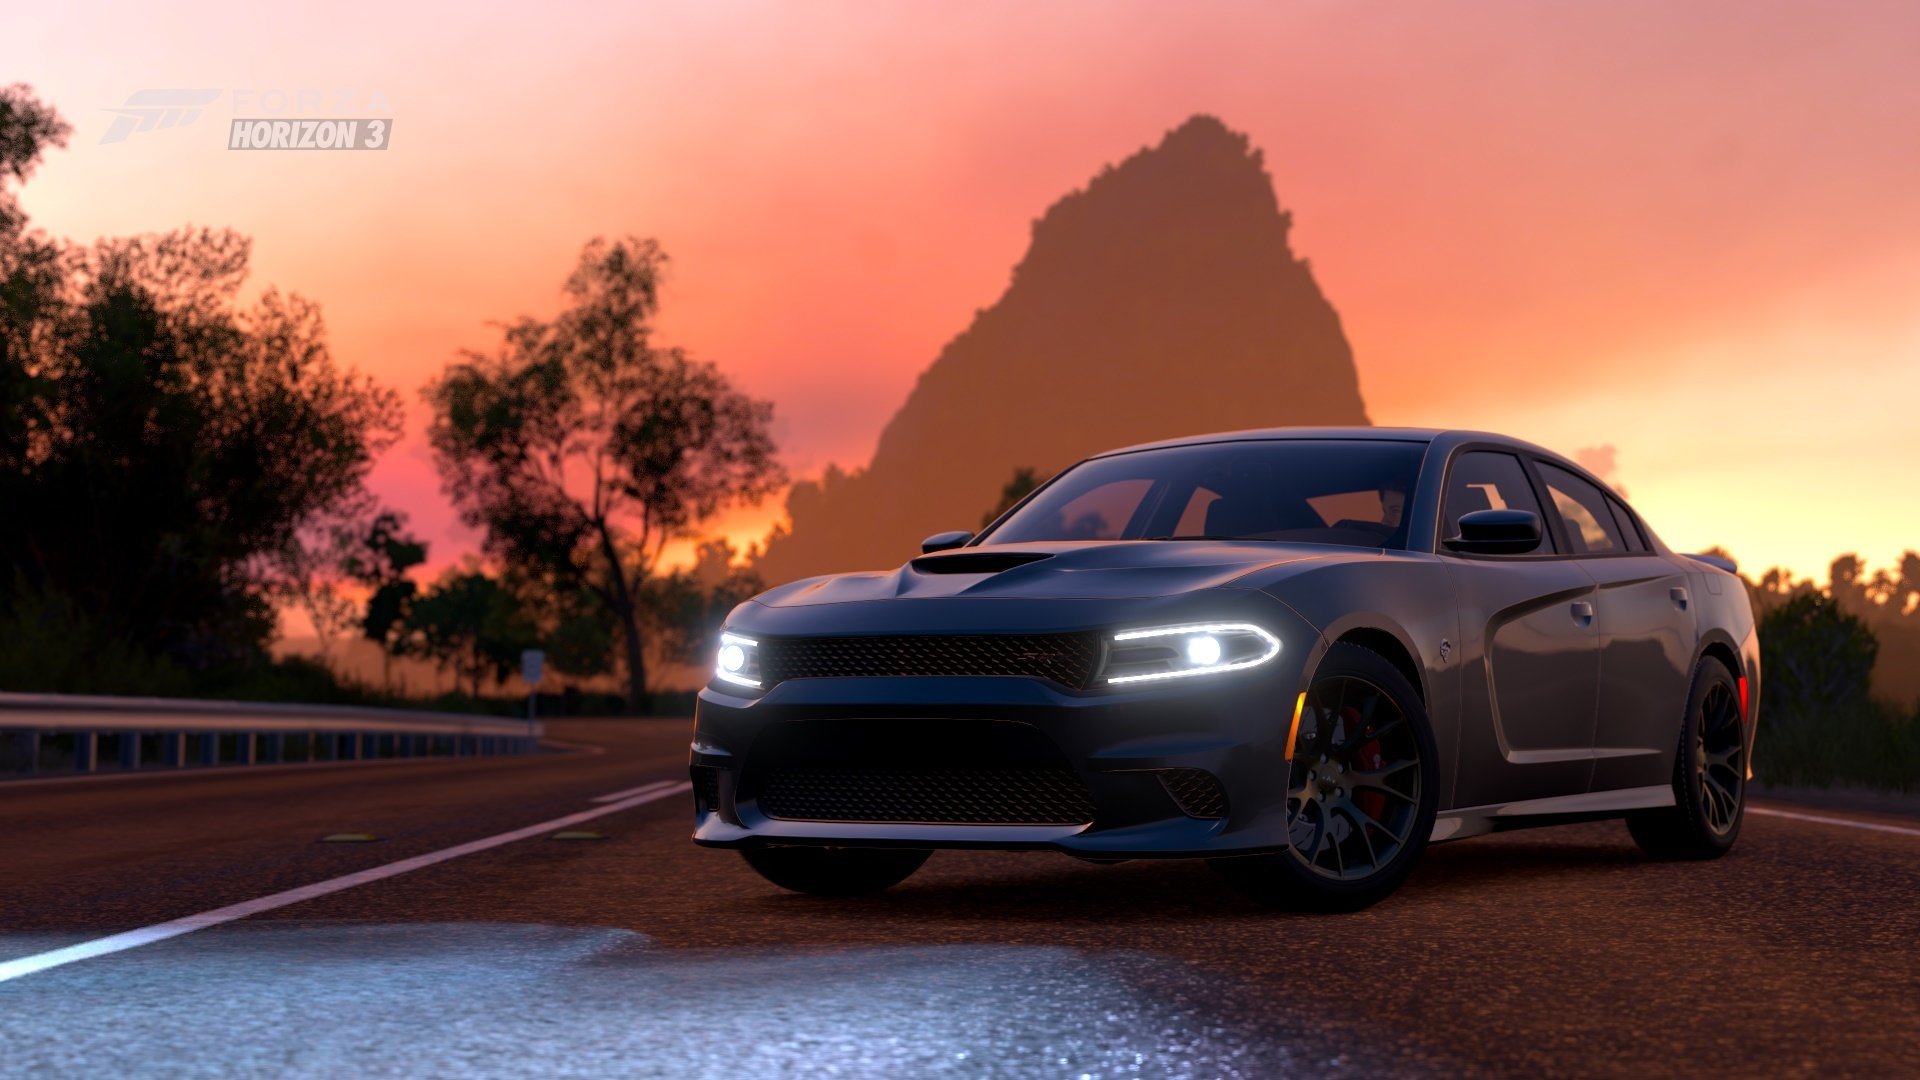 21 Dodge Charger Srt Hellcat Hd Wallpapers Background Images Wallpaper Abyss